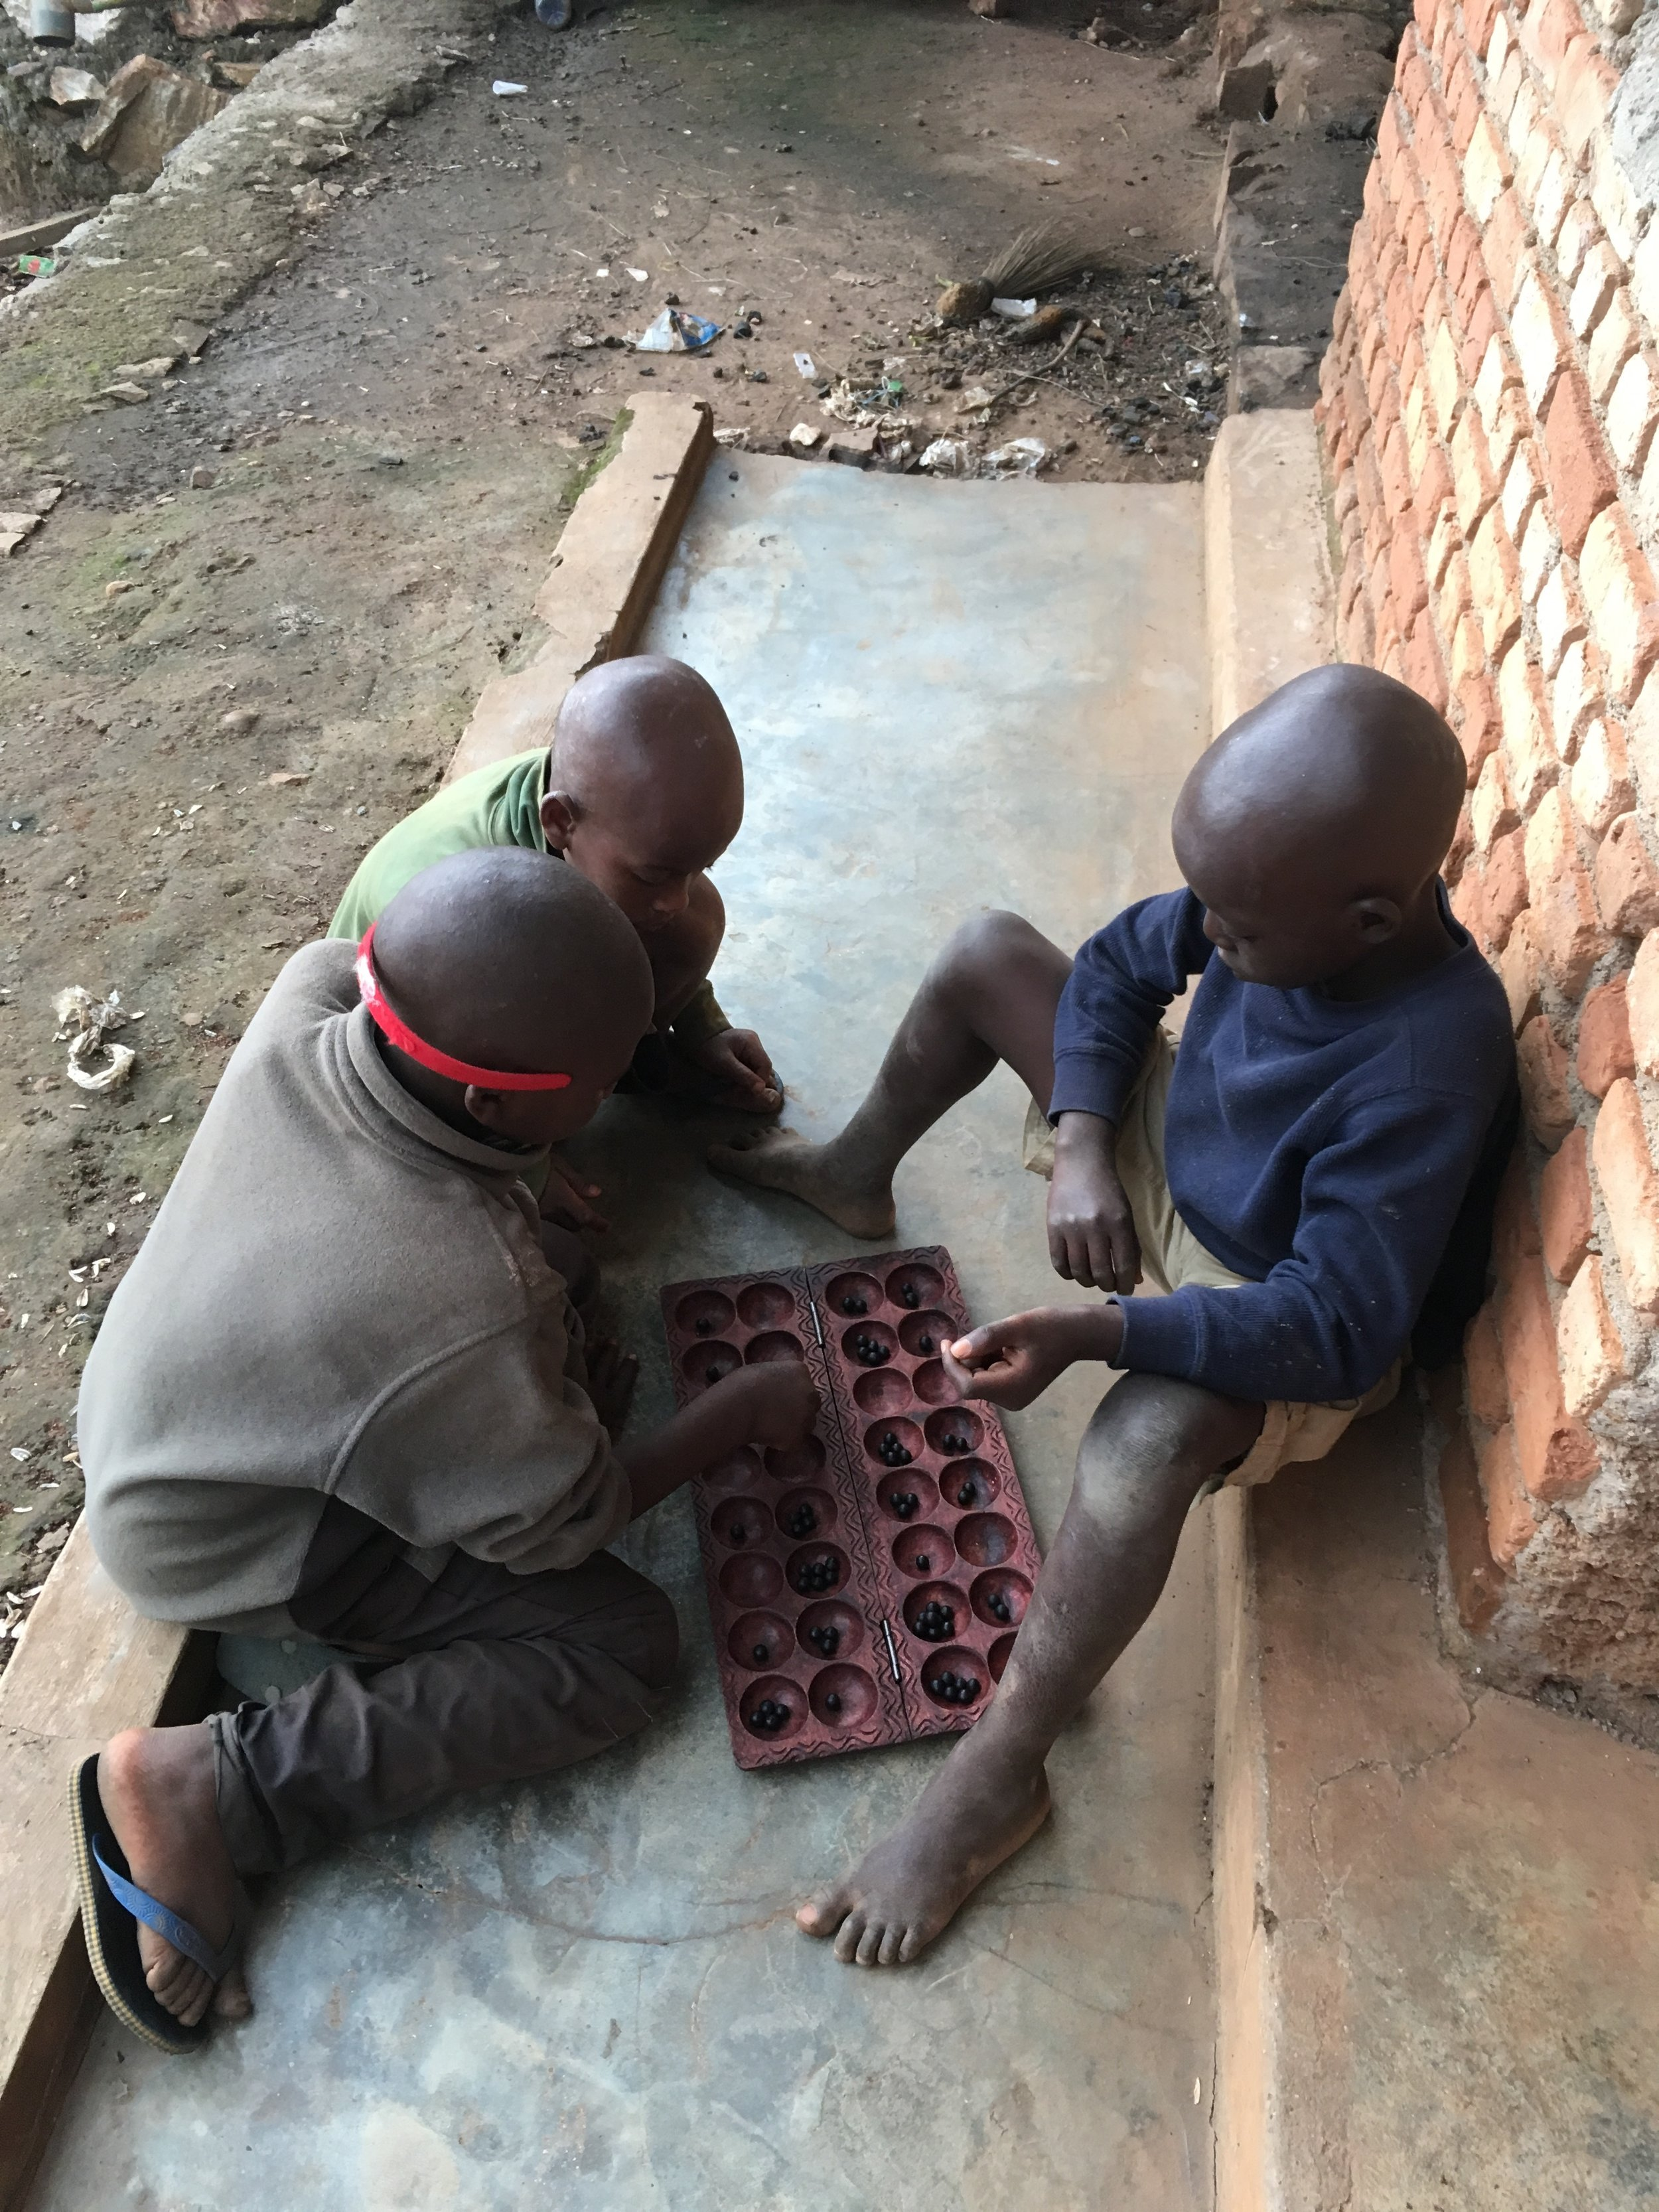 The little ones learning a traditional game called Igisoro. It has similarities to Mancala. They picked it up pretty quick.